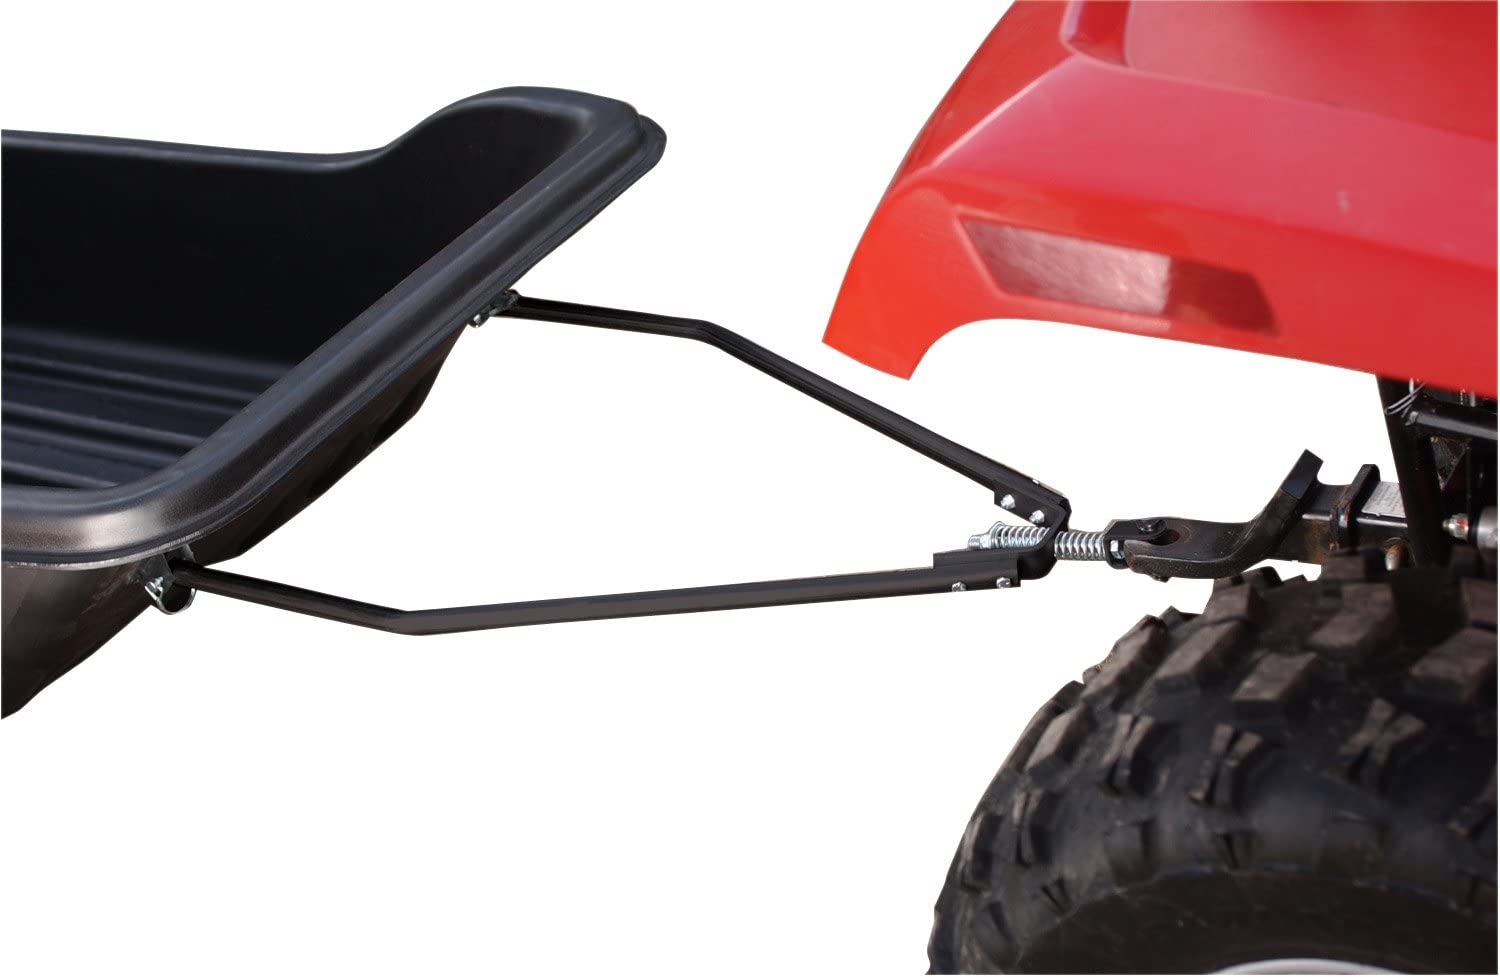 Clam (CLAM0) Clam Hitch Kit, Multicolor, One Size